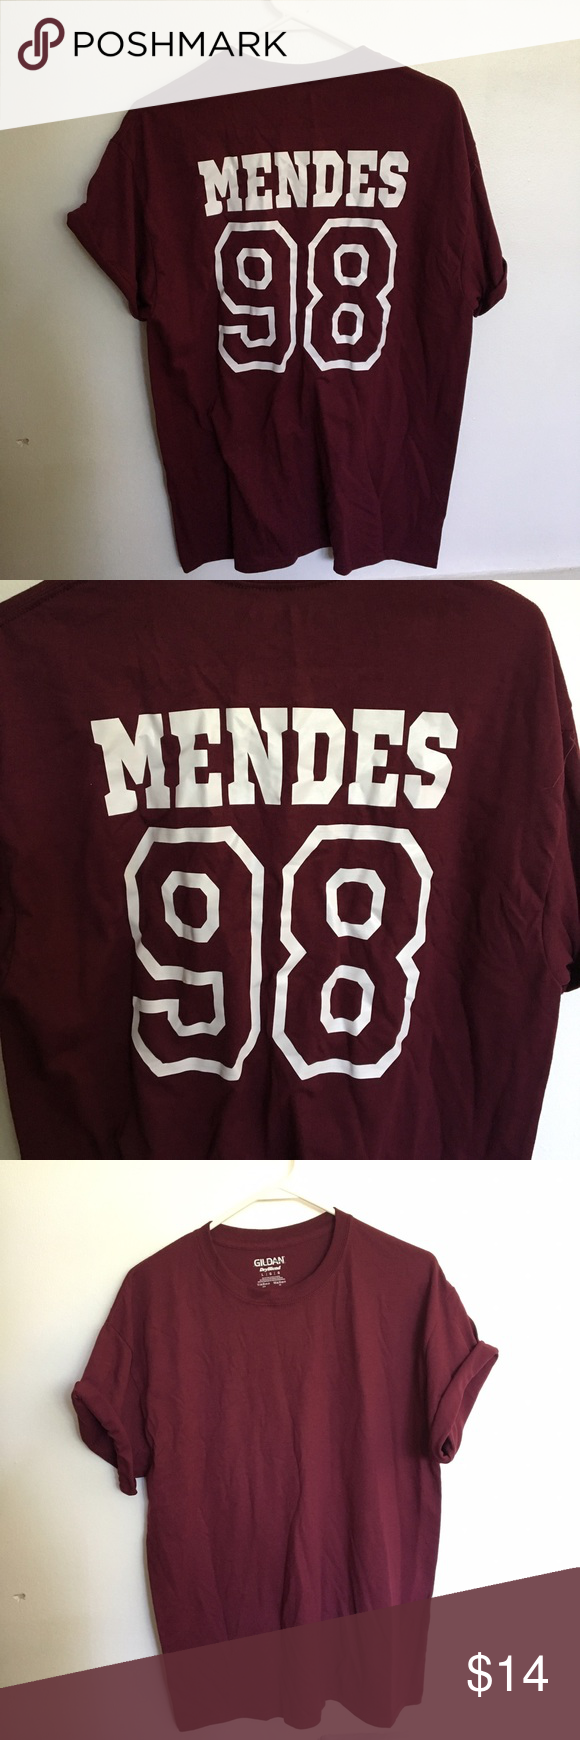 671bac739 Shawn Mendes shirt Maroon Shawn Mendes shirt.